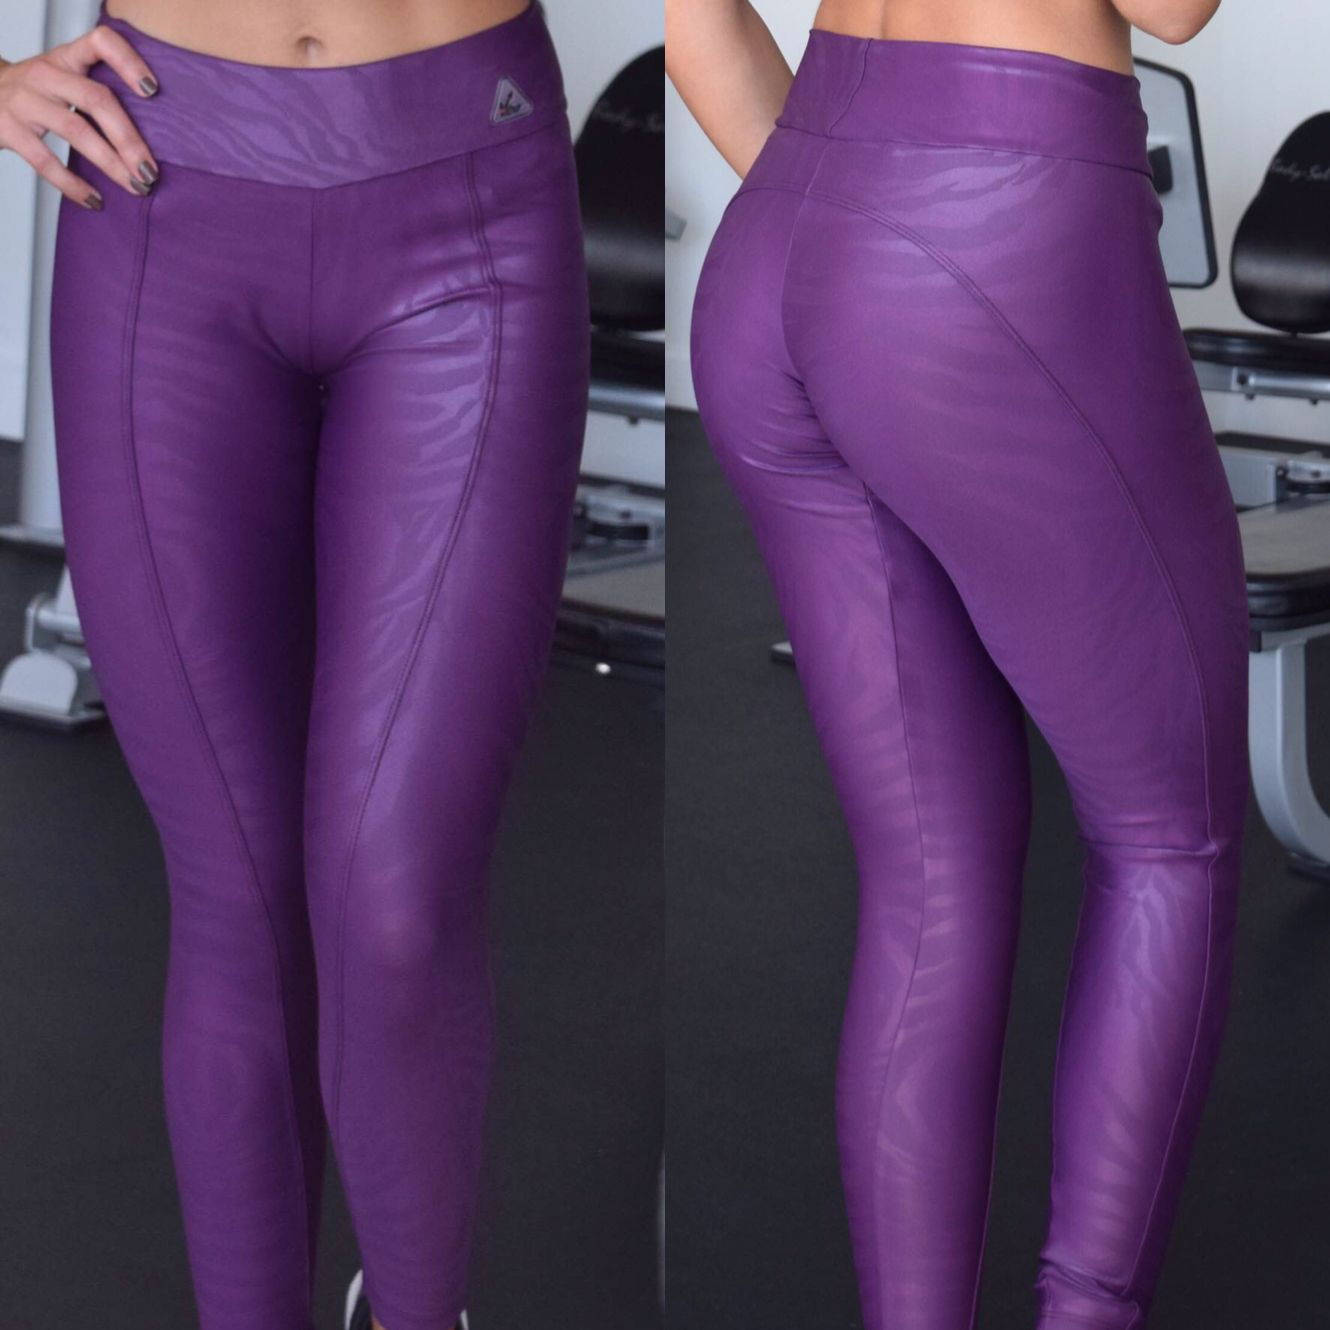 30aea261cdb4e Purple leggings for yoga and any workout fitness activity women's fitness  fashion animal prints shine fabric from Brazil